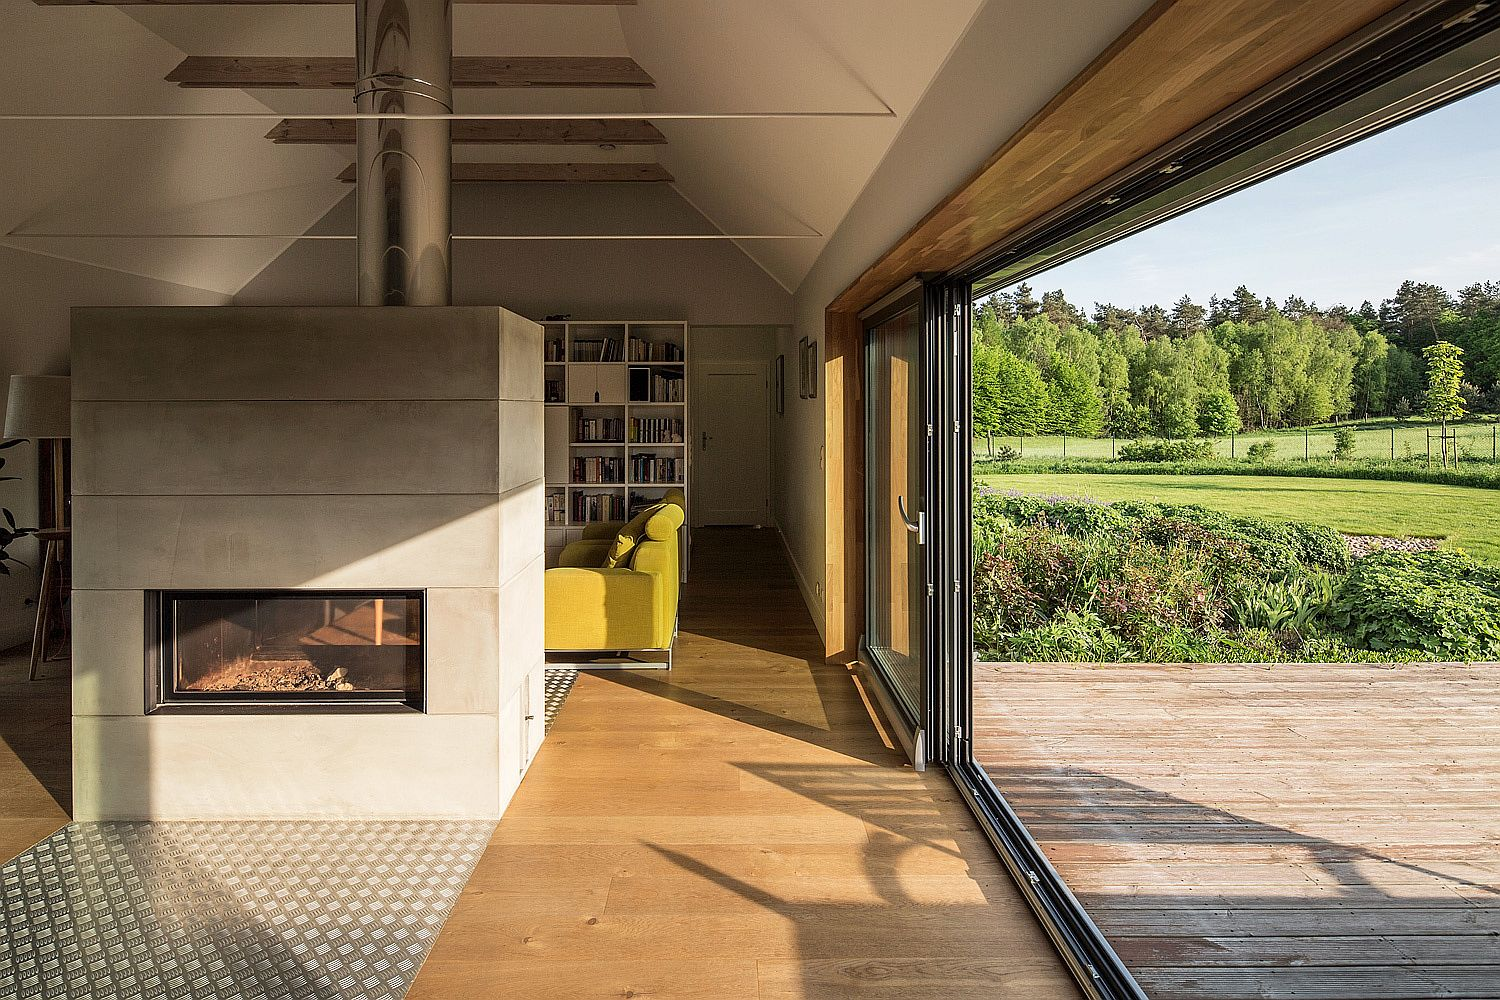 Sliding glass doors connect the living area and fireplace with the sunny deck outside